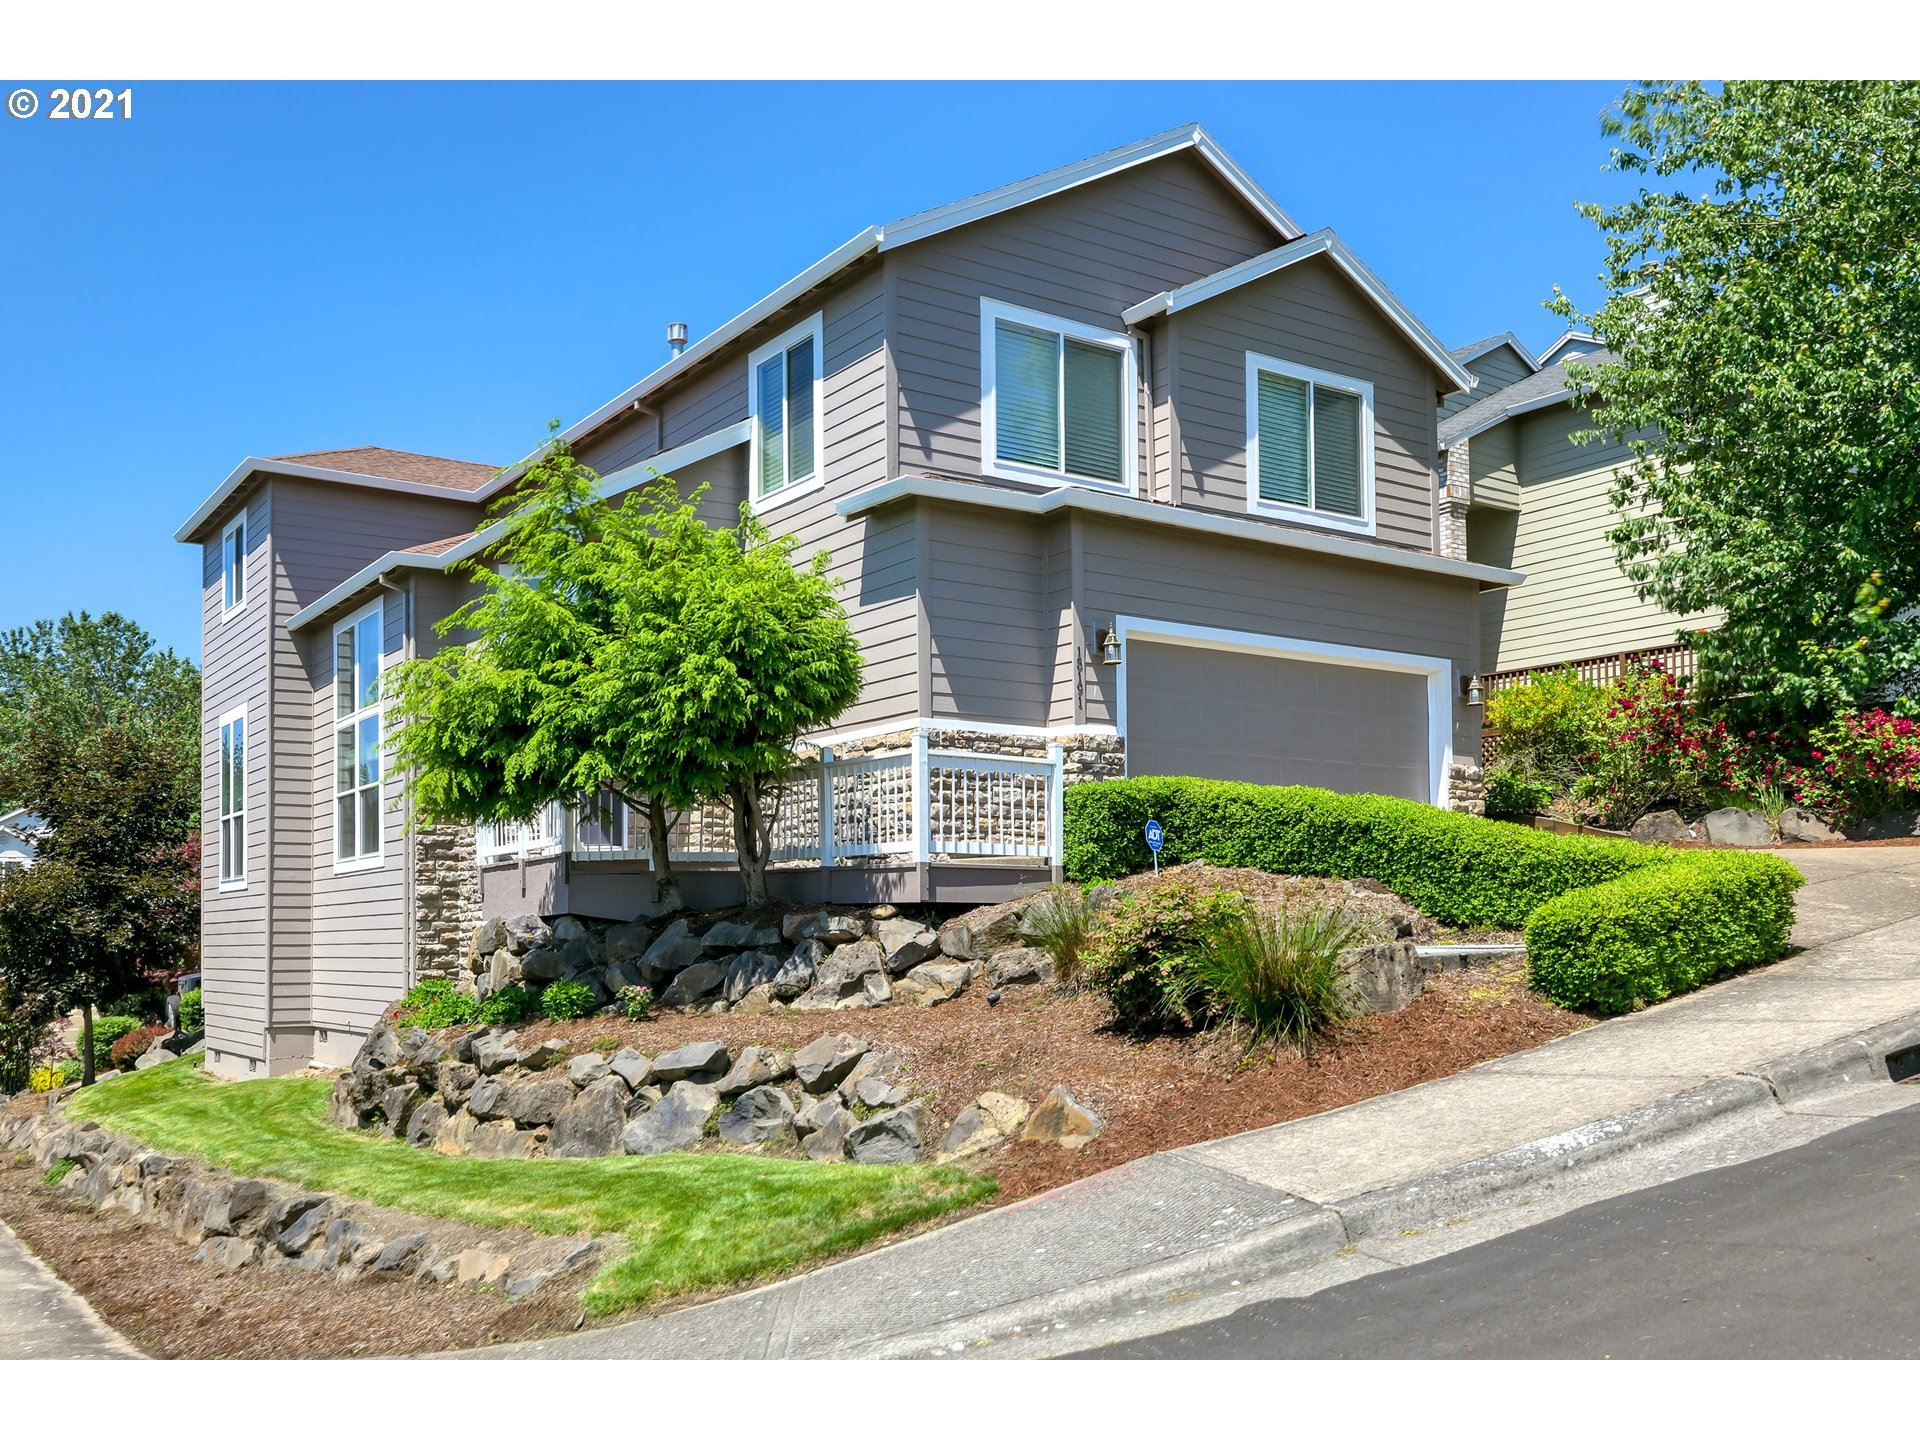 15191 SW 122ND AVE, Tigard, OR 97224 - MLS#: 21203182